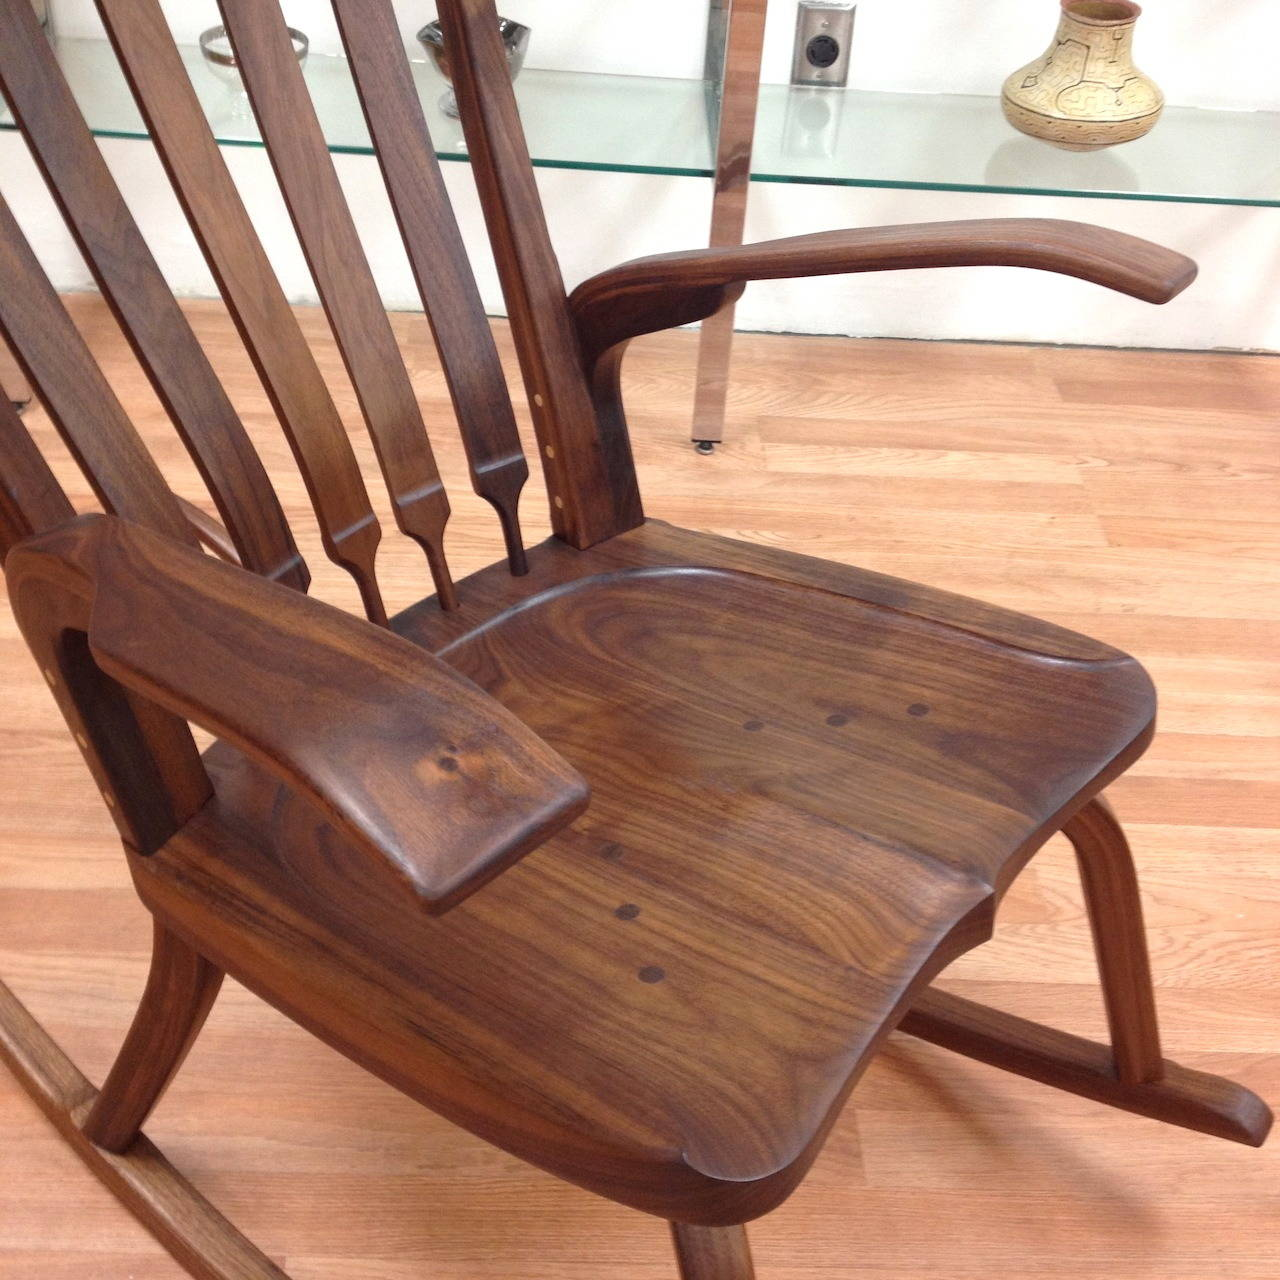 Beautiful Rocking Chairs Beautiful Handcrafted Studio Rocking Chair By California